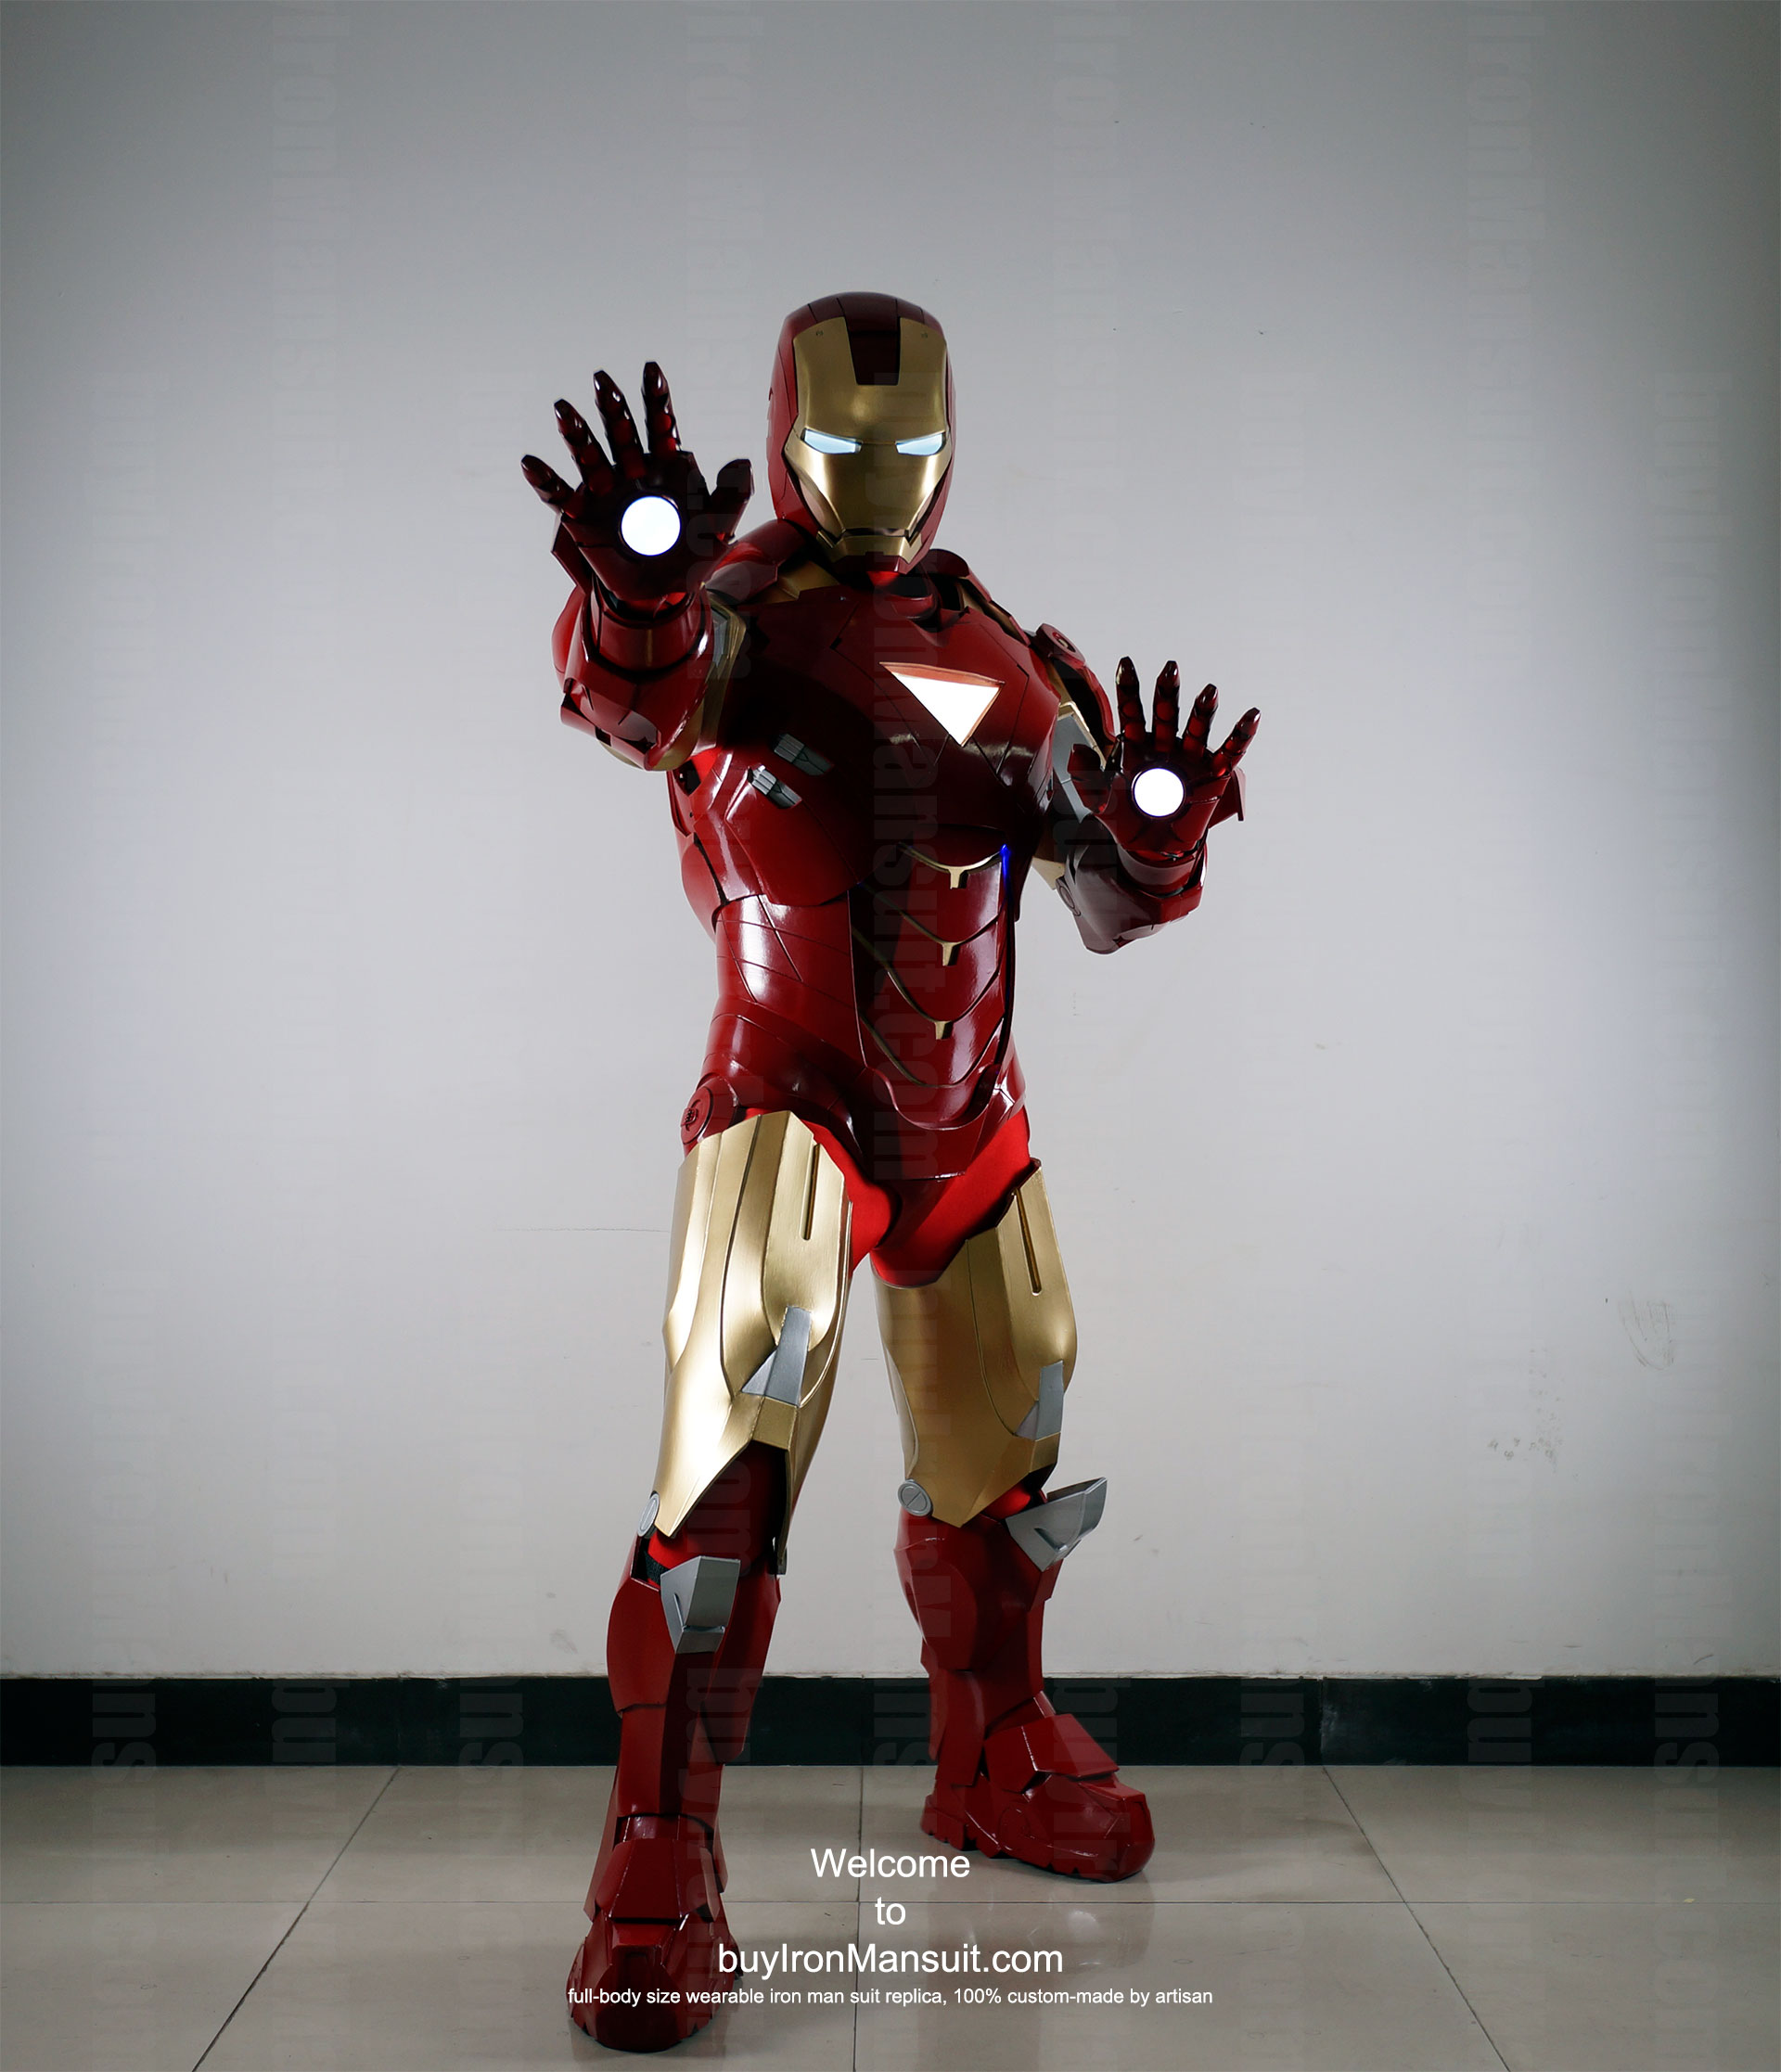 Iron Man Costume Ideas and Tips. Tony Stark is the snarkiest out of all the Avengers, so if you go out as him in one of our Iron Man costumes this Halloween, you're sure to land some witty one-liners!